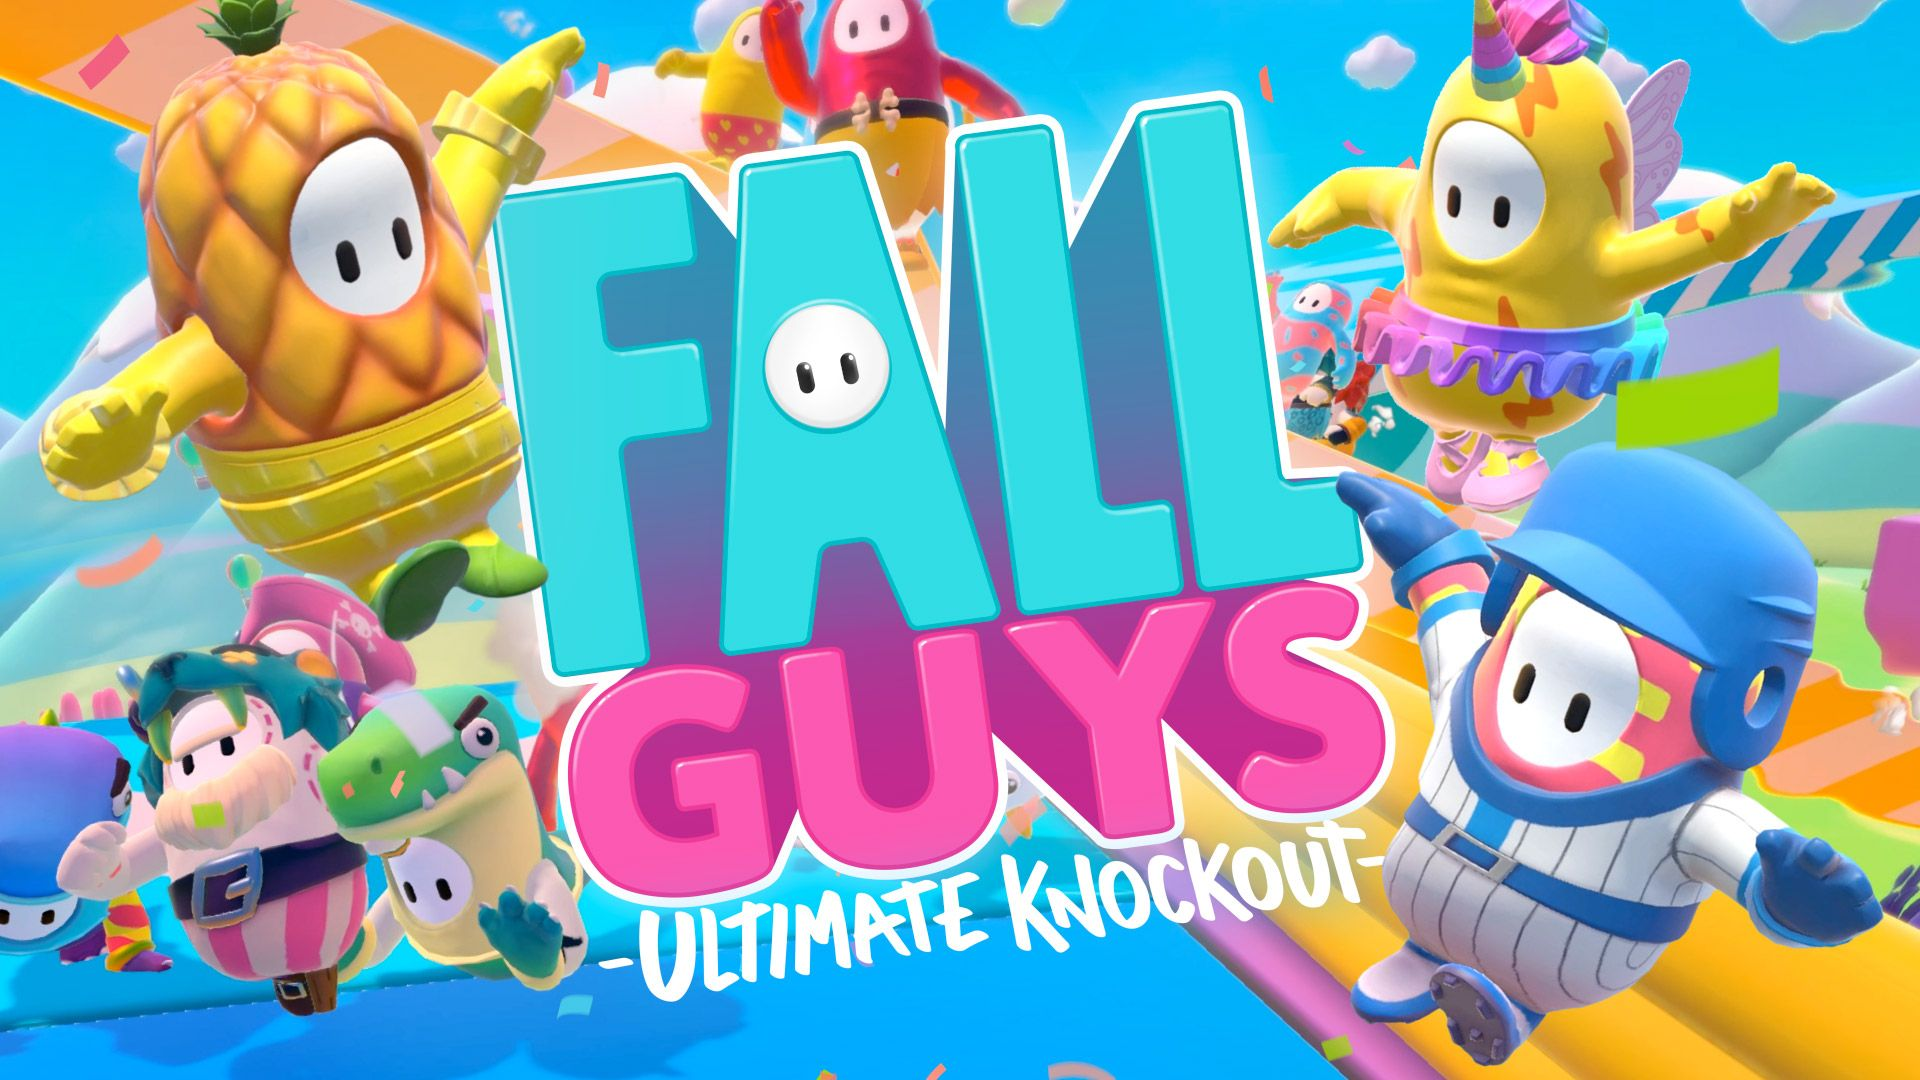 Fall Guys Ultimate Knockout Wallpapers Wallpaper Cave